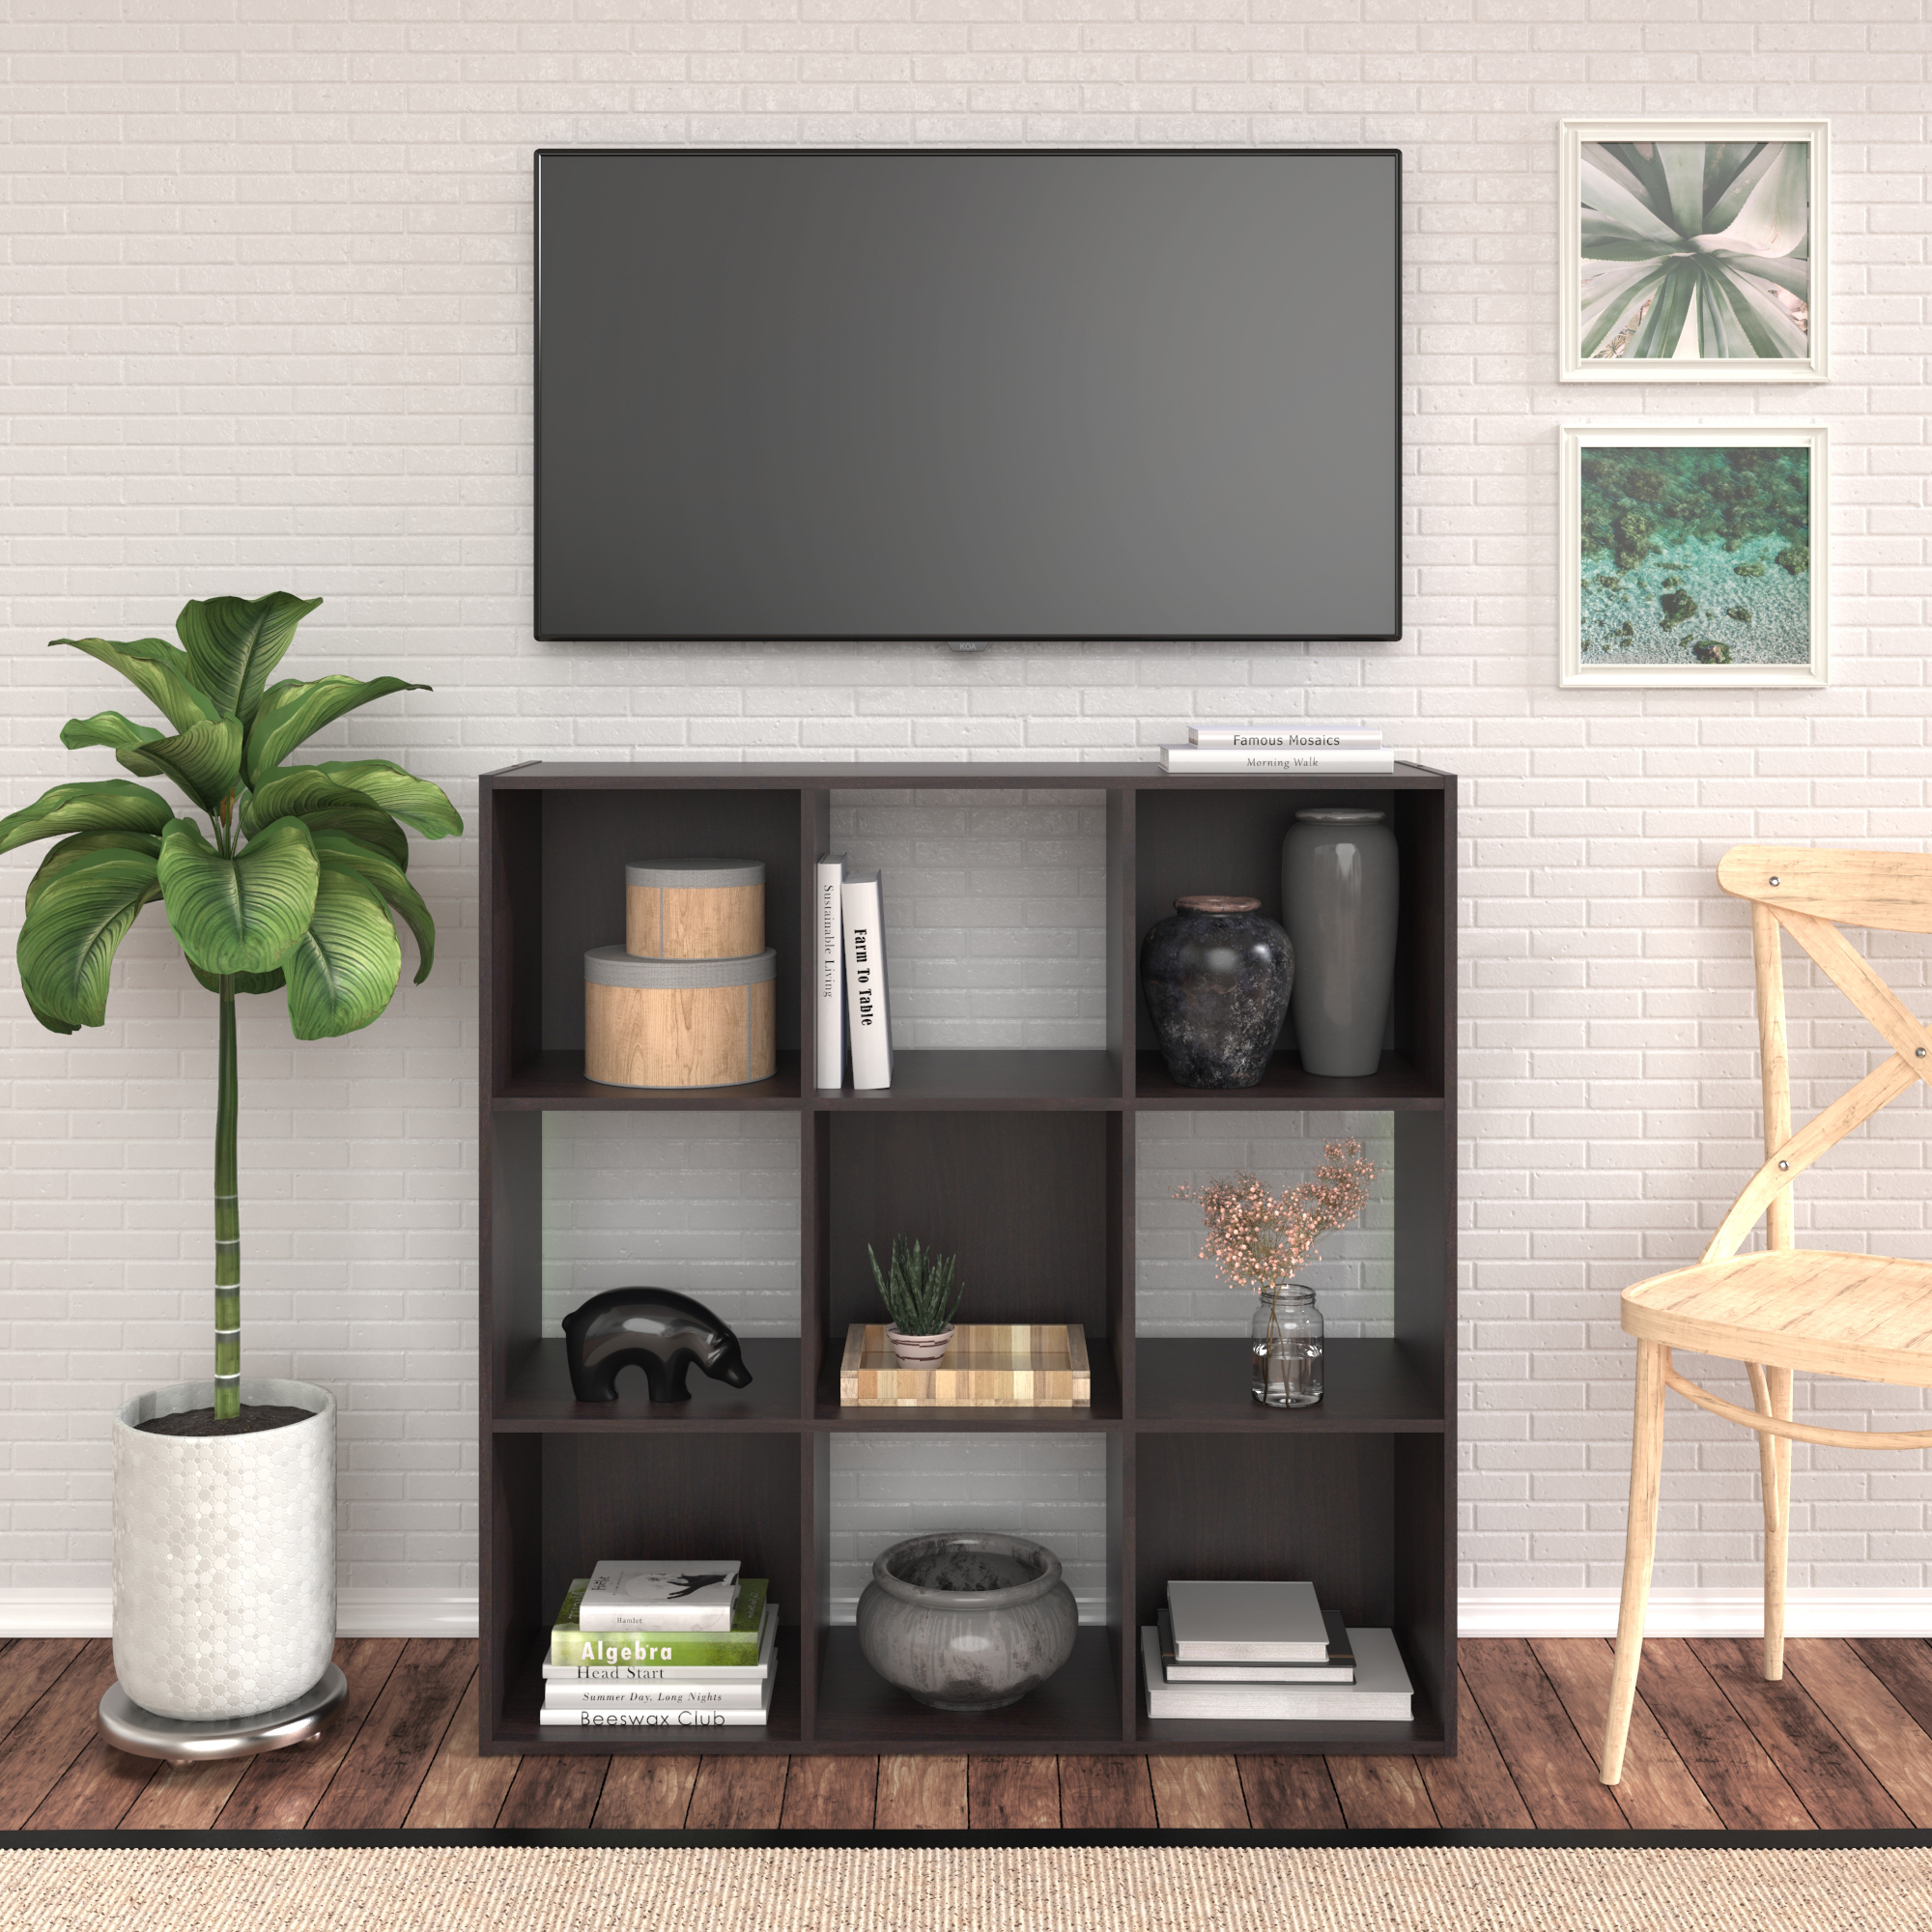 7 Budget-friendly Ways to Organize Your First Place